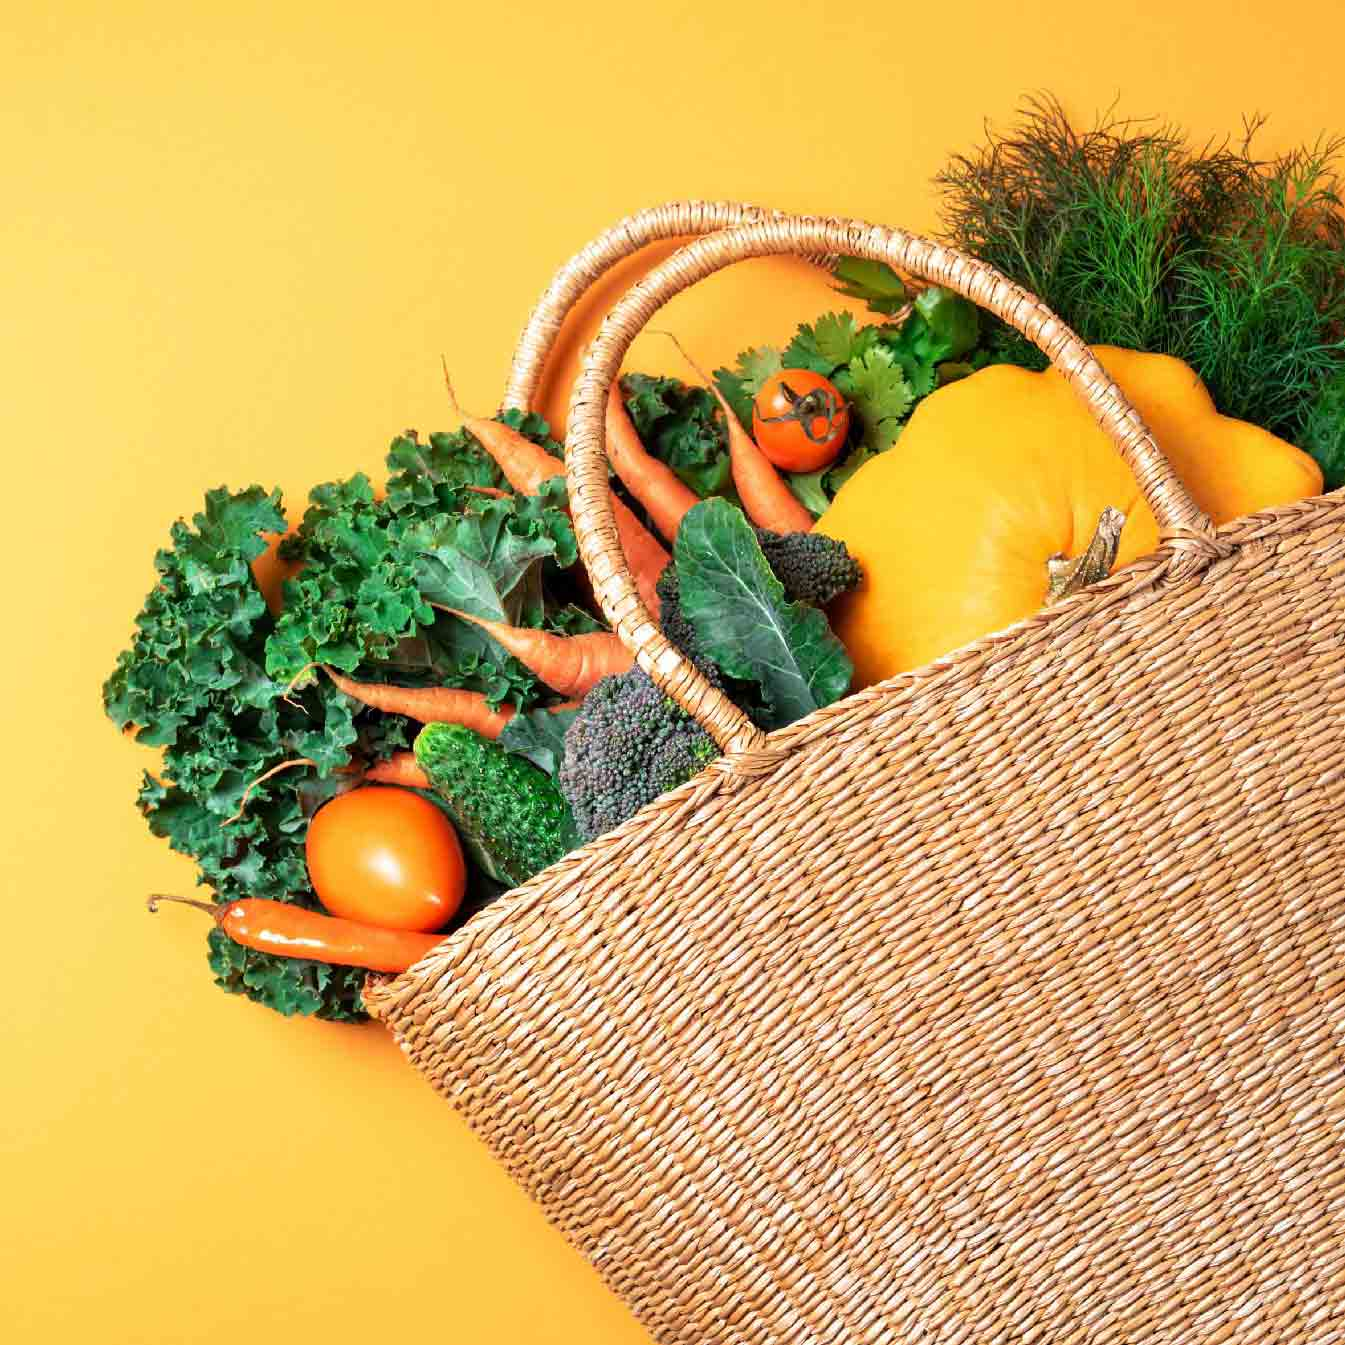 Woven shopping basket filled with vegetables similar to what is provided by Sun Basket